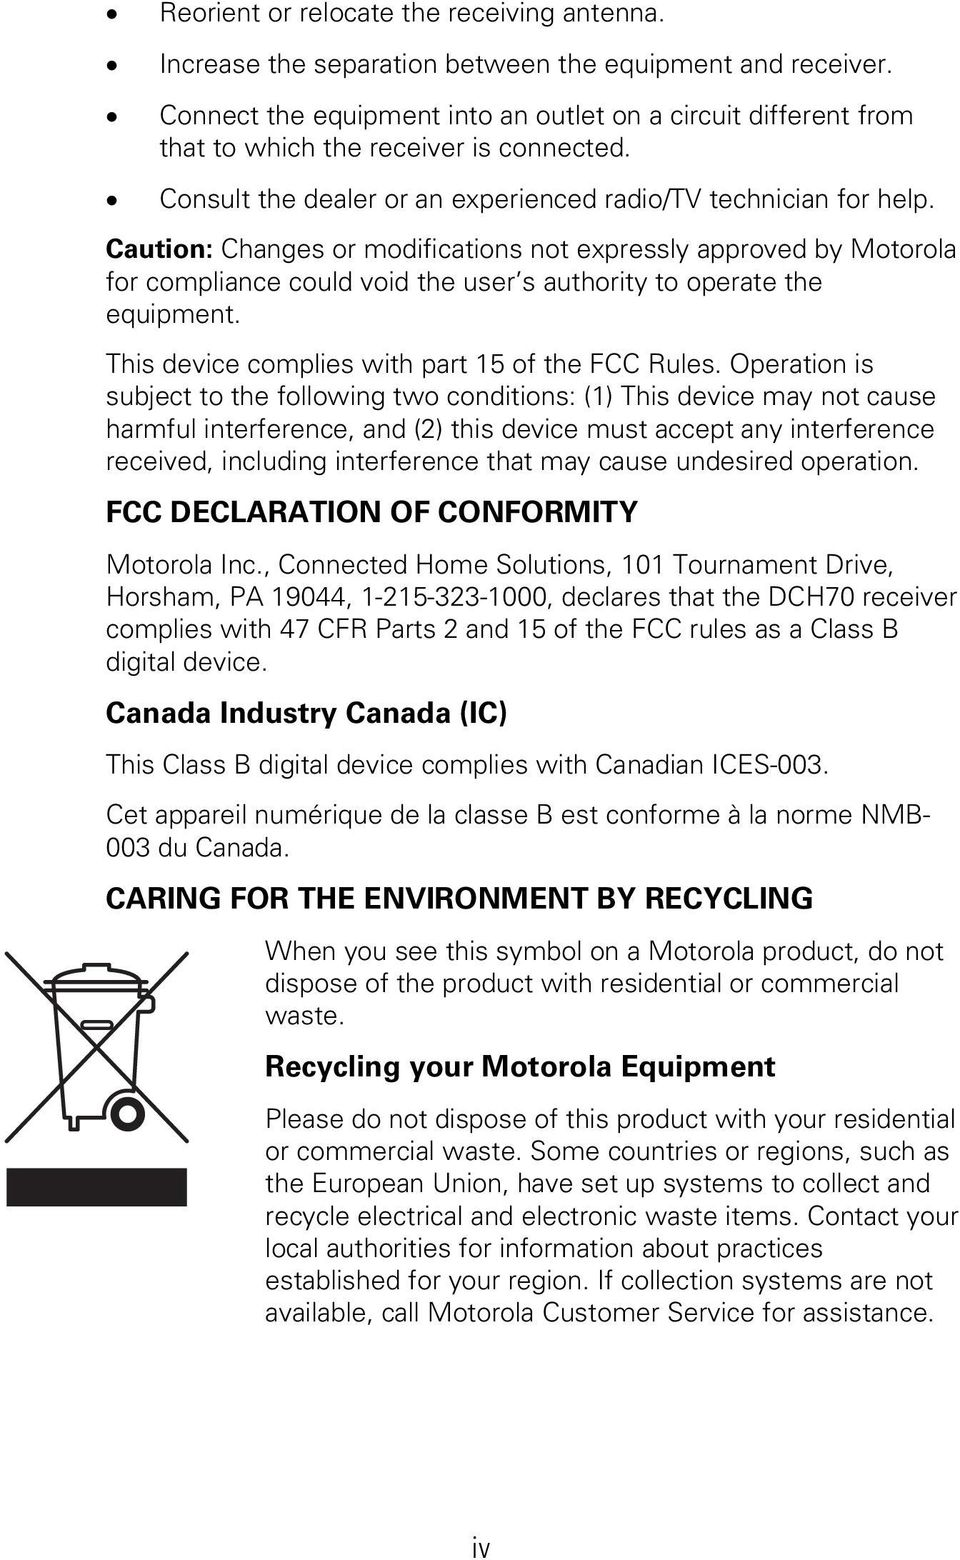 Caution: Changes or modifications not expressly approved by Motorola for compliance could void the user s authority to operate the equipment. This device complies with part 15 of the FCC Rules.